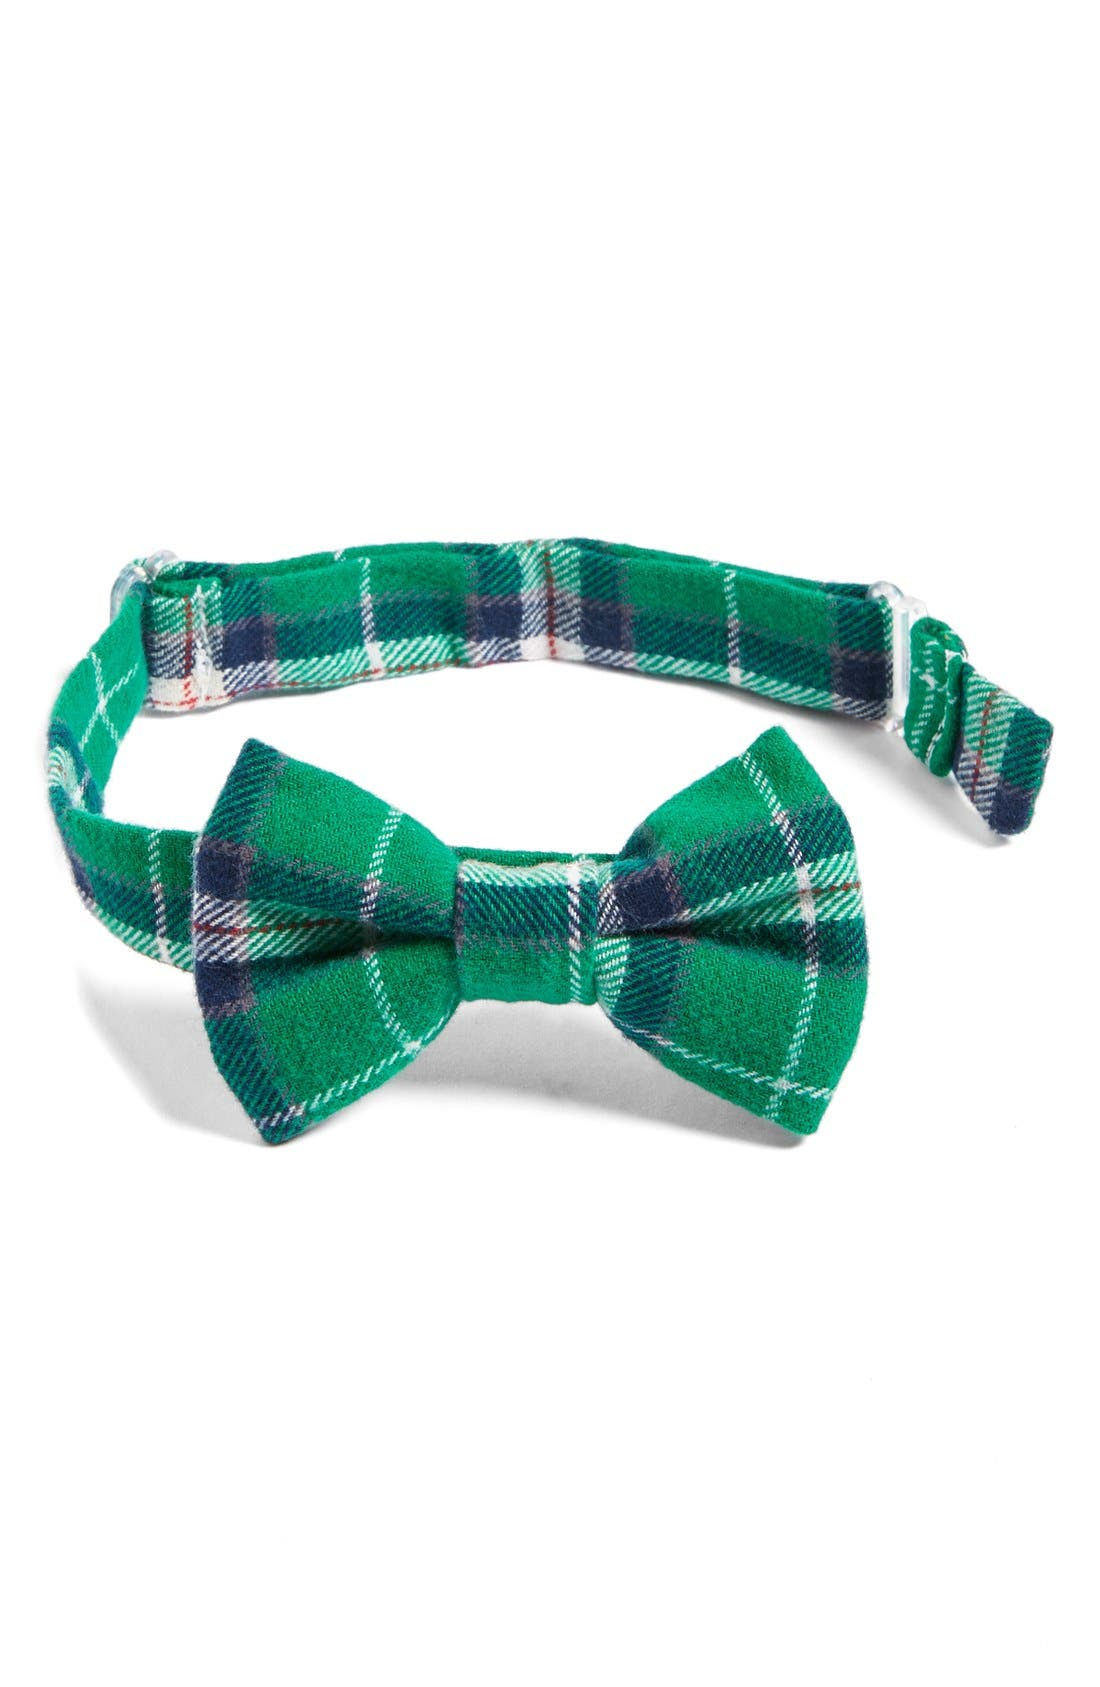 Alternate Image 1 Selected - Baby Bow Tie Plaid Cotton Bow Tie (Baby Boys)